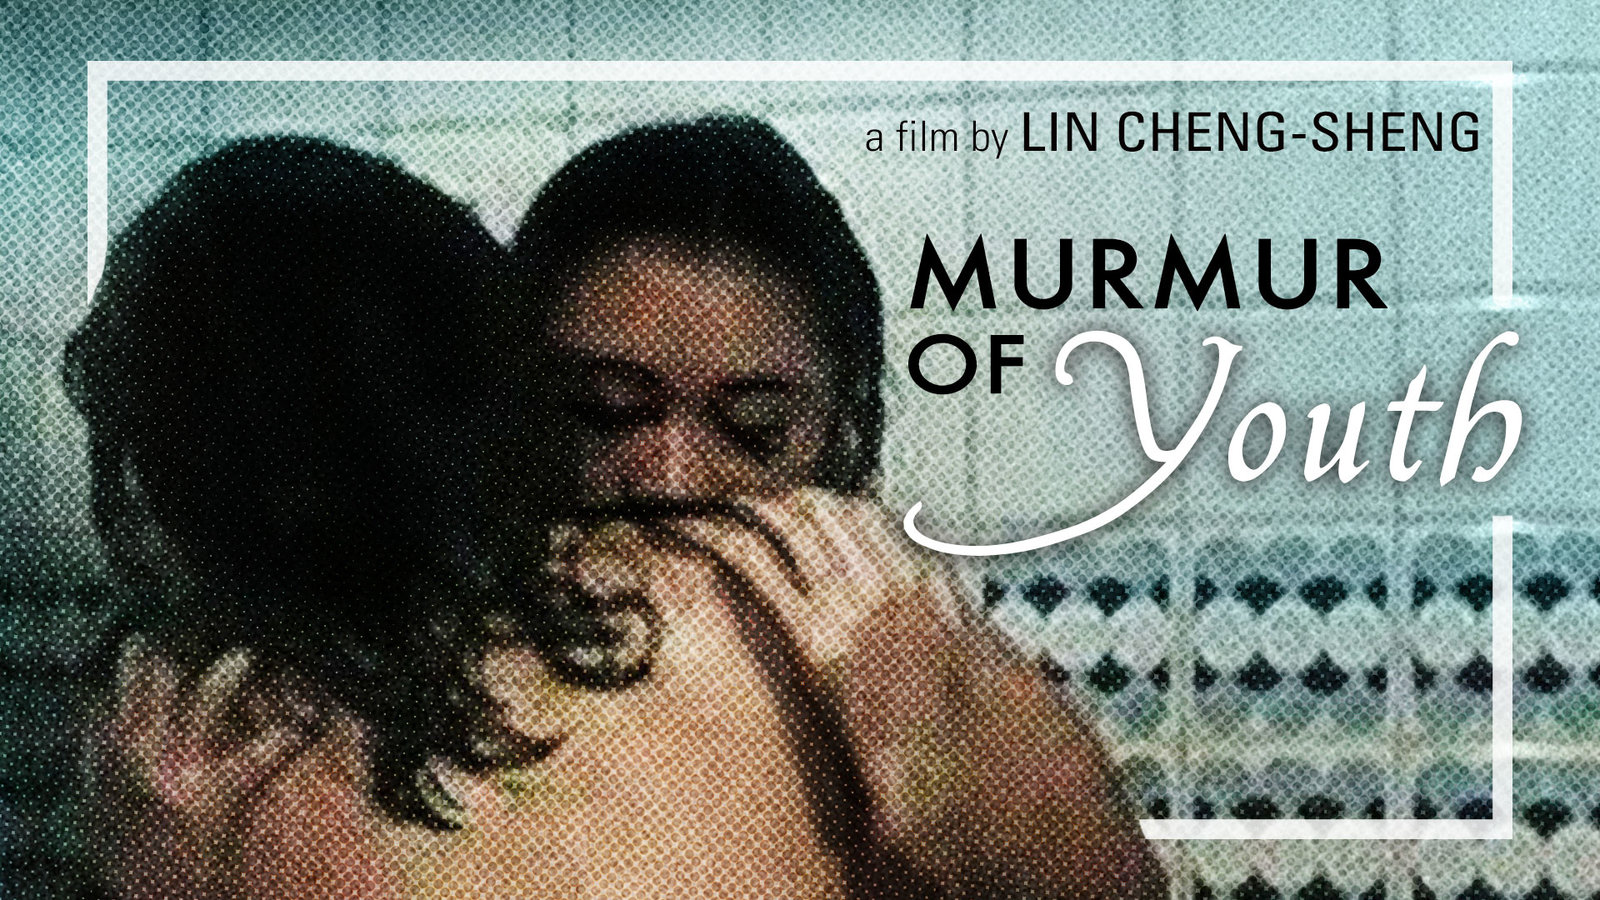 Murmur of Youth - Mei li zai chang ge